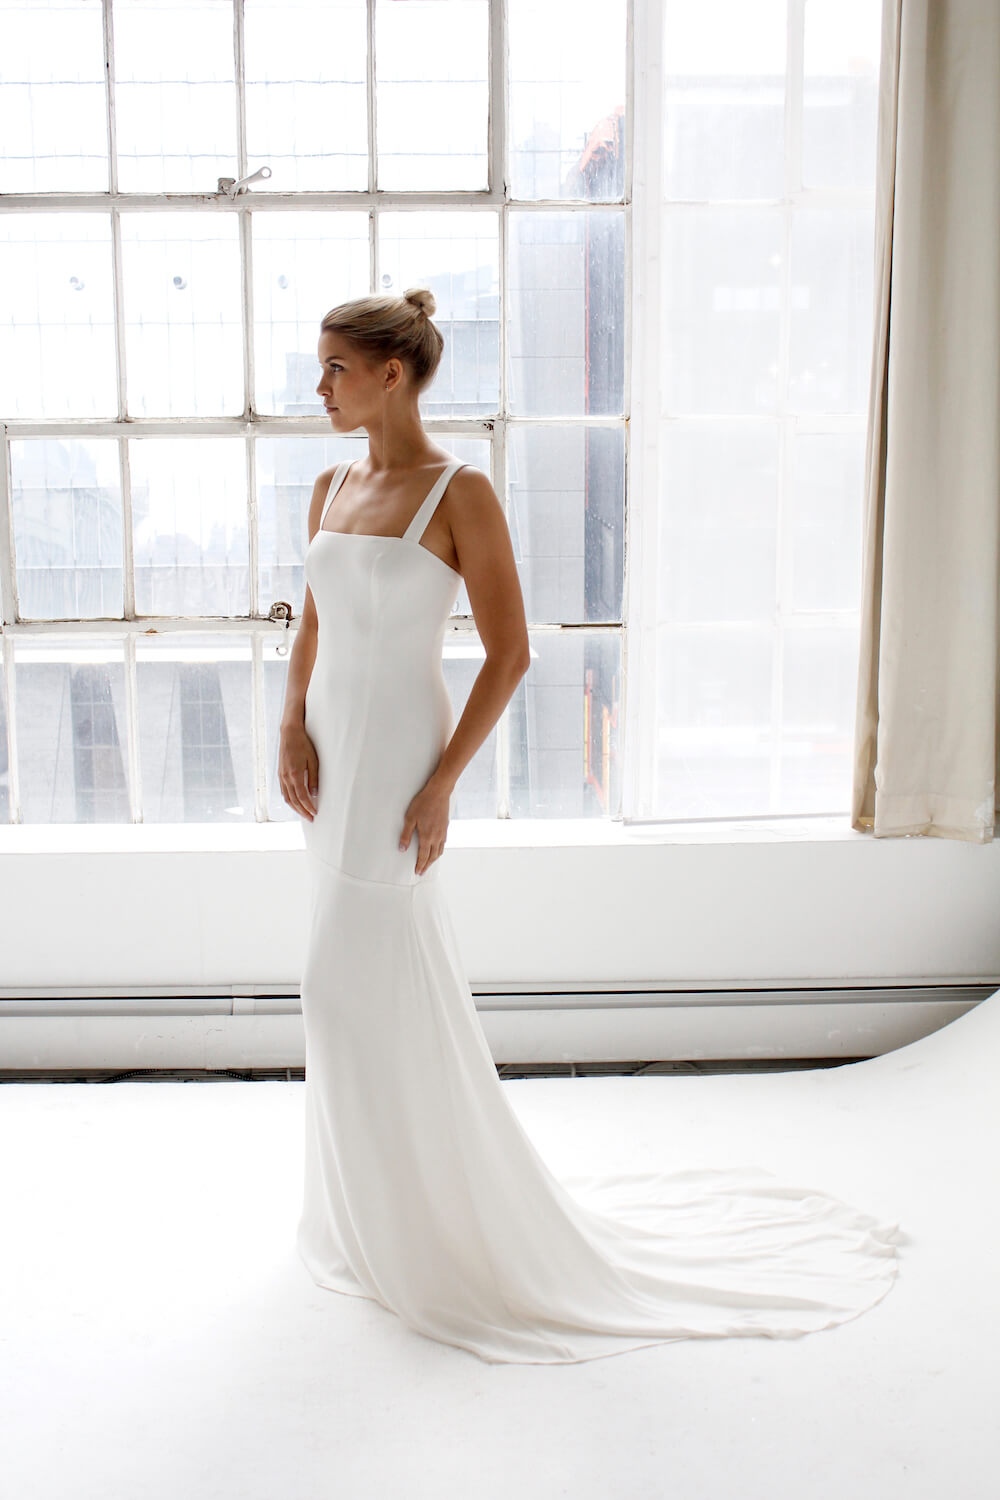 Clarity wedding dress by Fiona Claire featured on LOVE FIND CO.